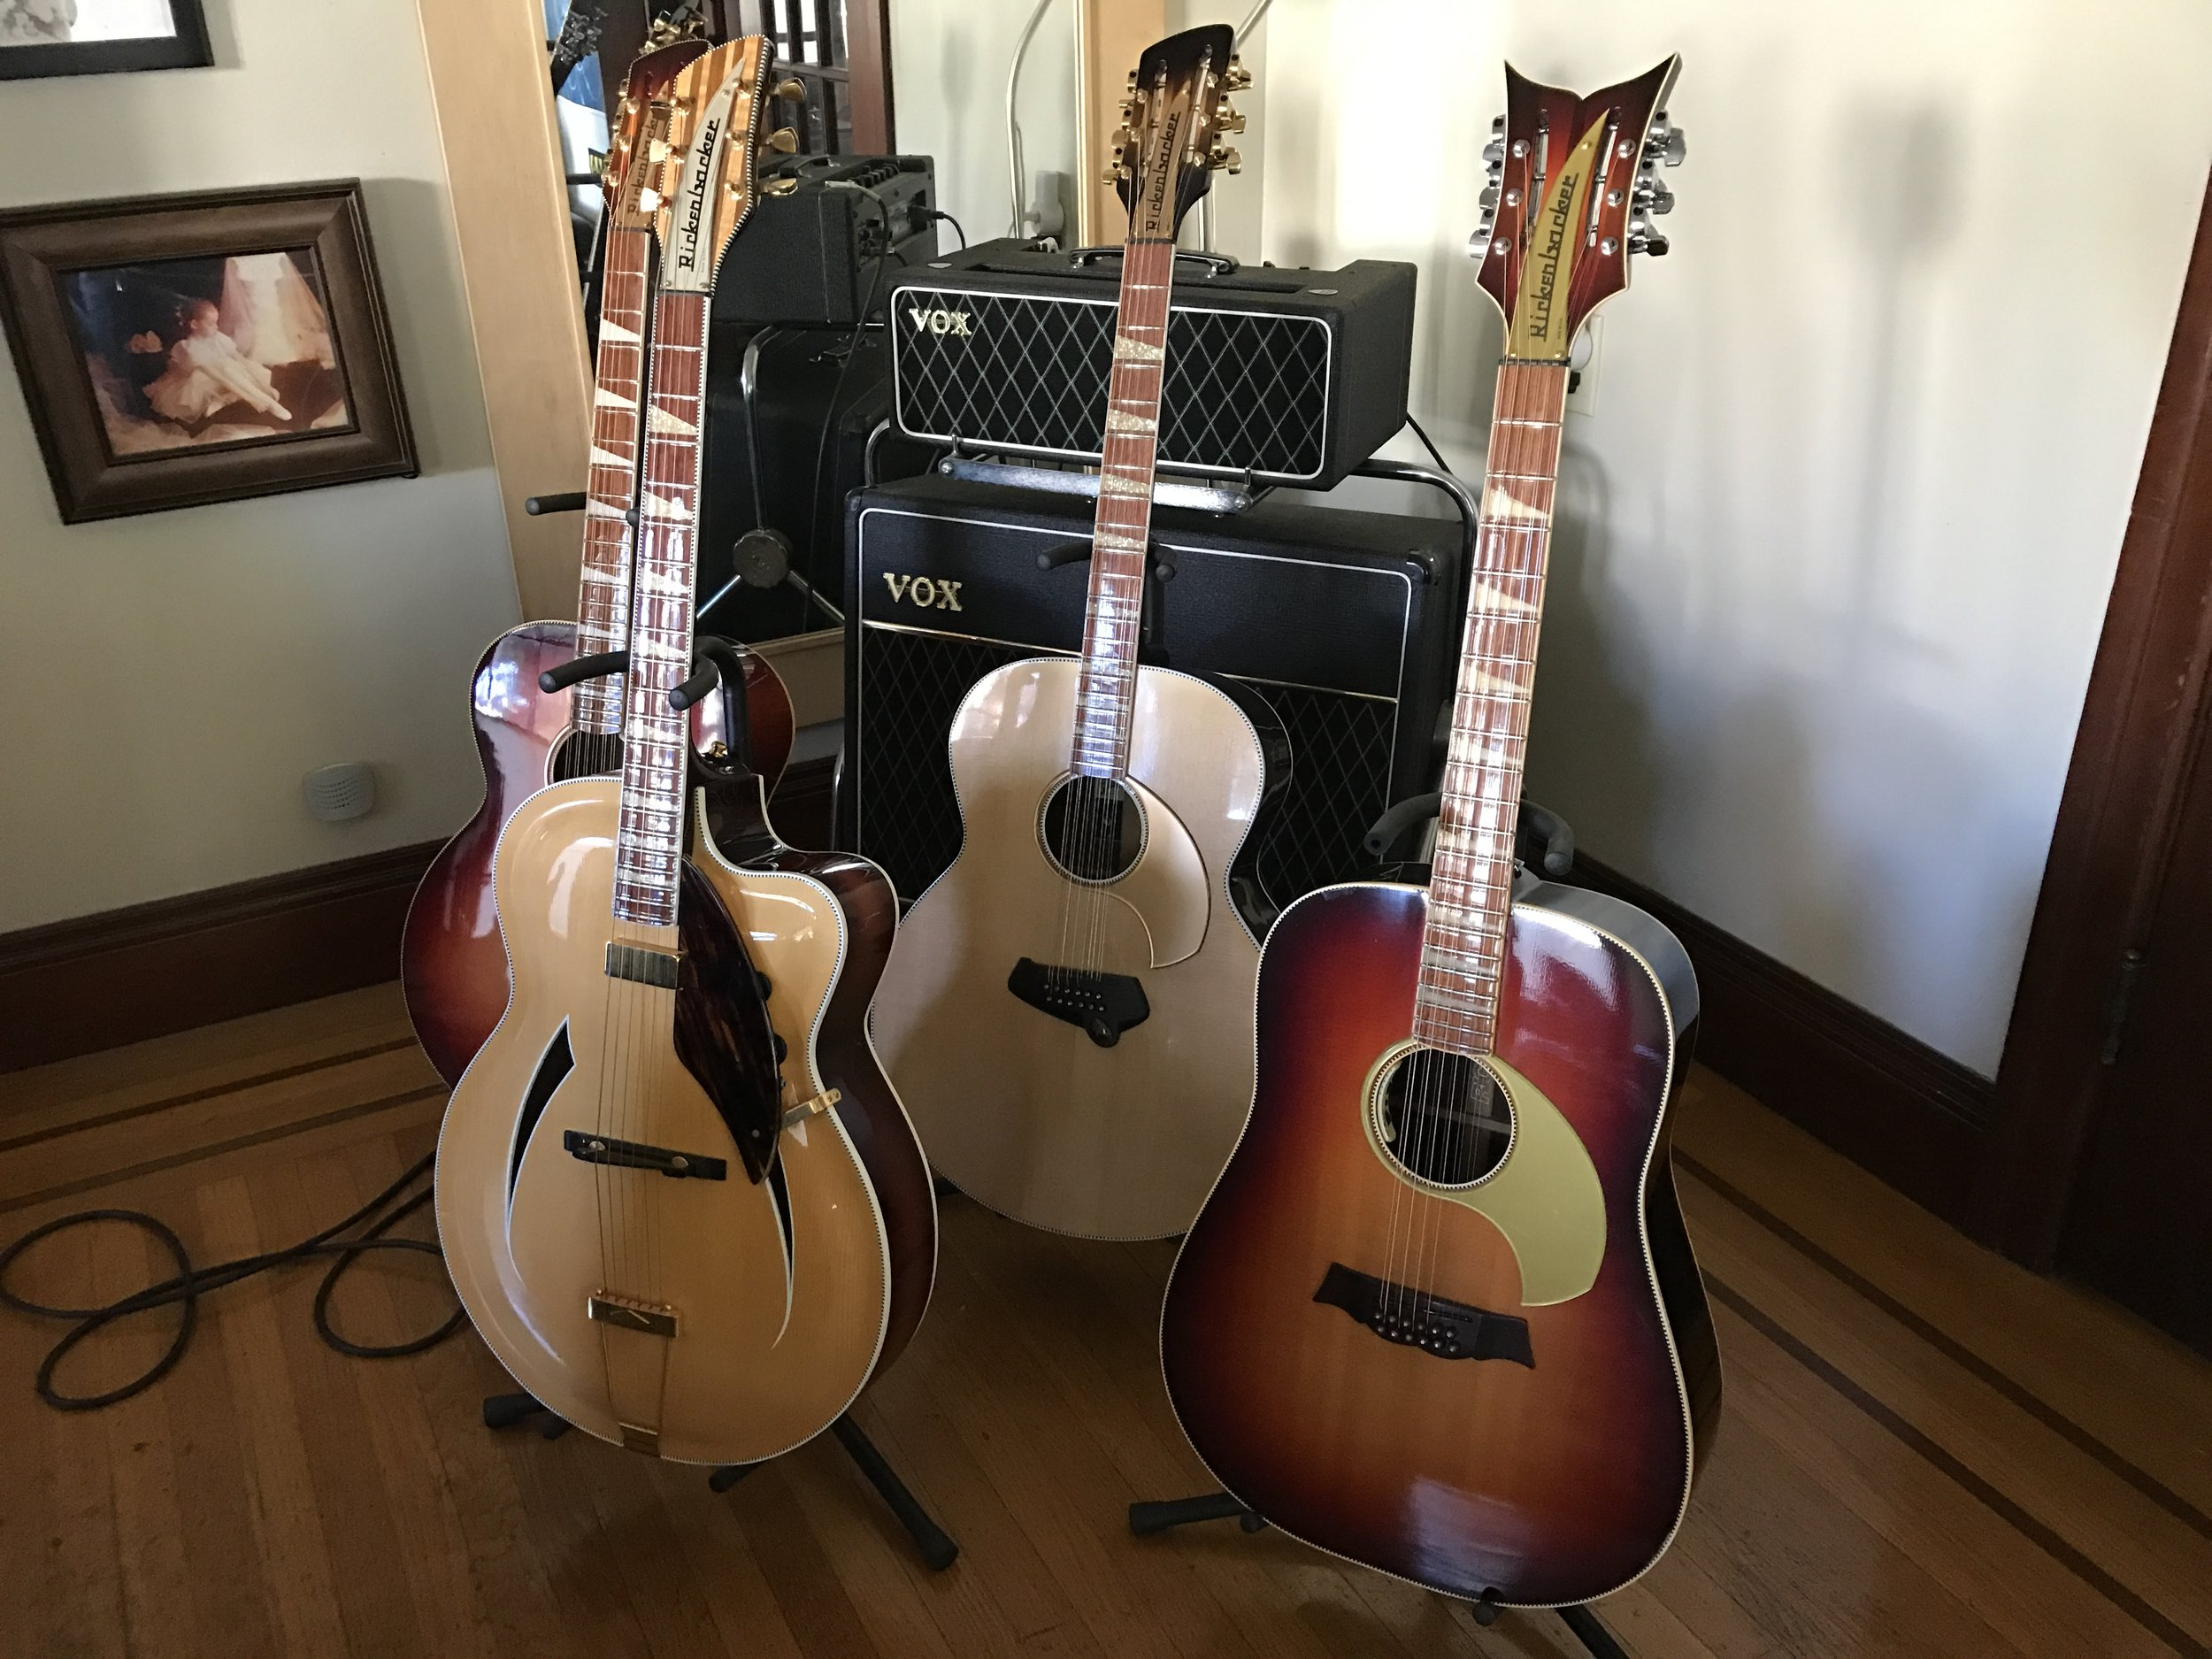 3 FLAT TOP 12-STRINGS AND A JAZZBO IN FRONT